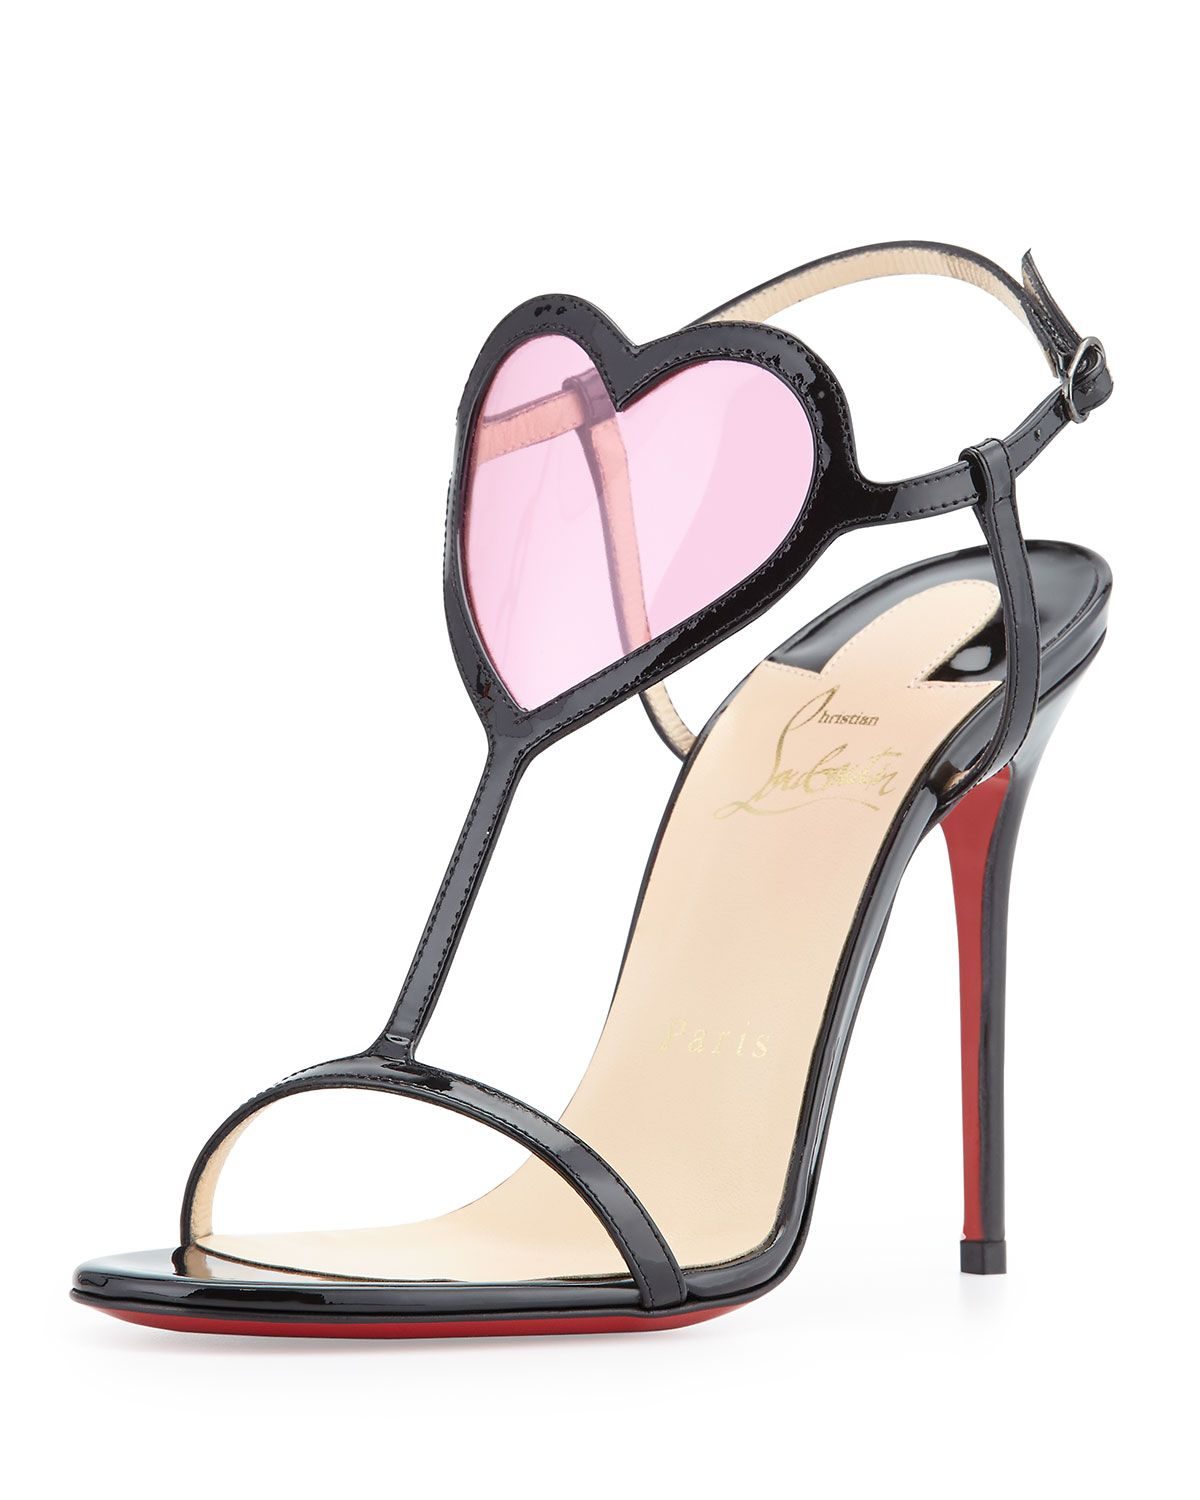 a09b28270f3 Cora Heart Red Sole Sandal Black/Pink | ACCESSORIES .... Shoes, Bags ...